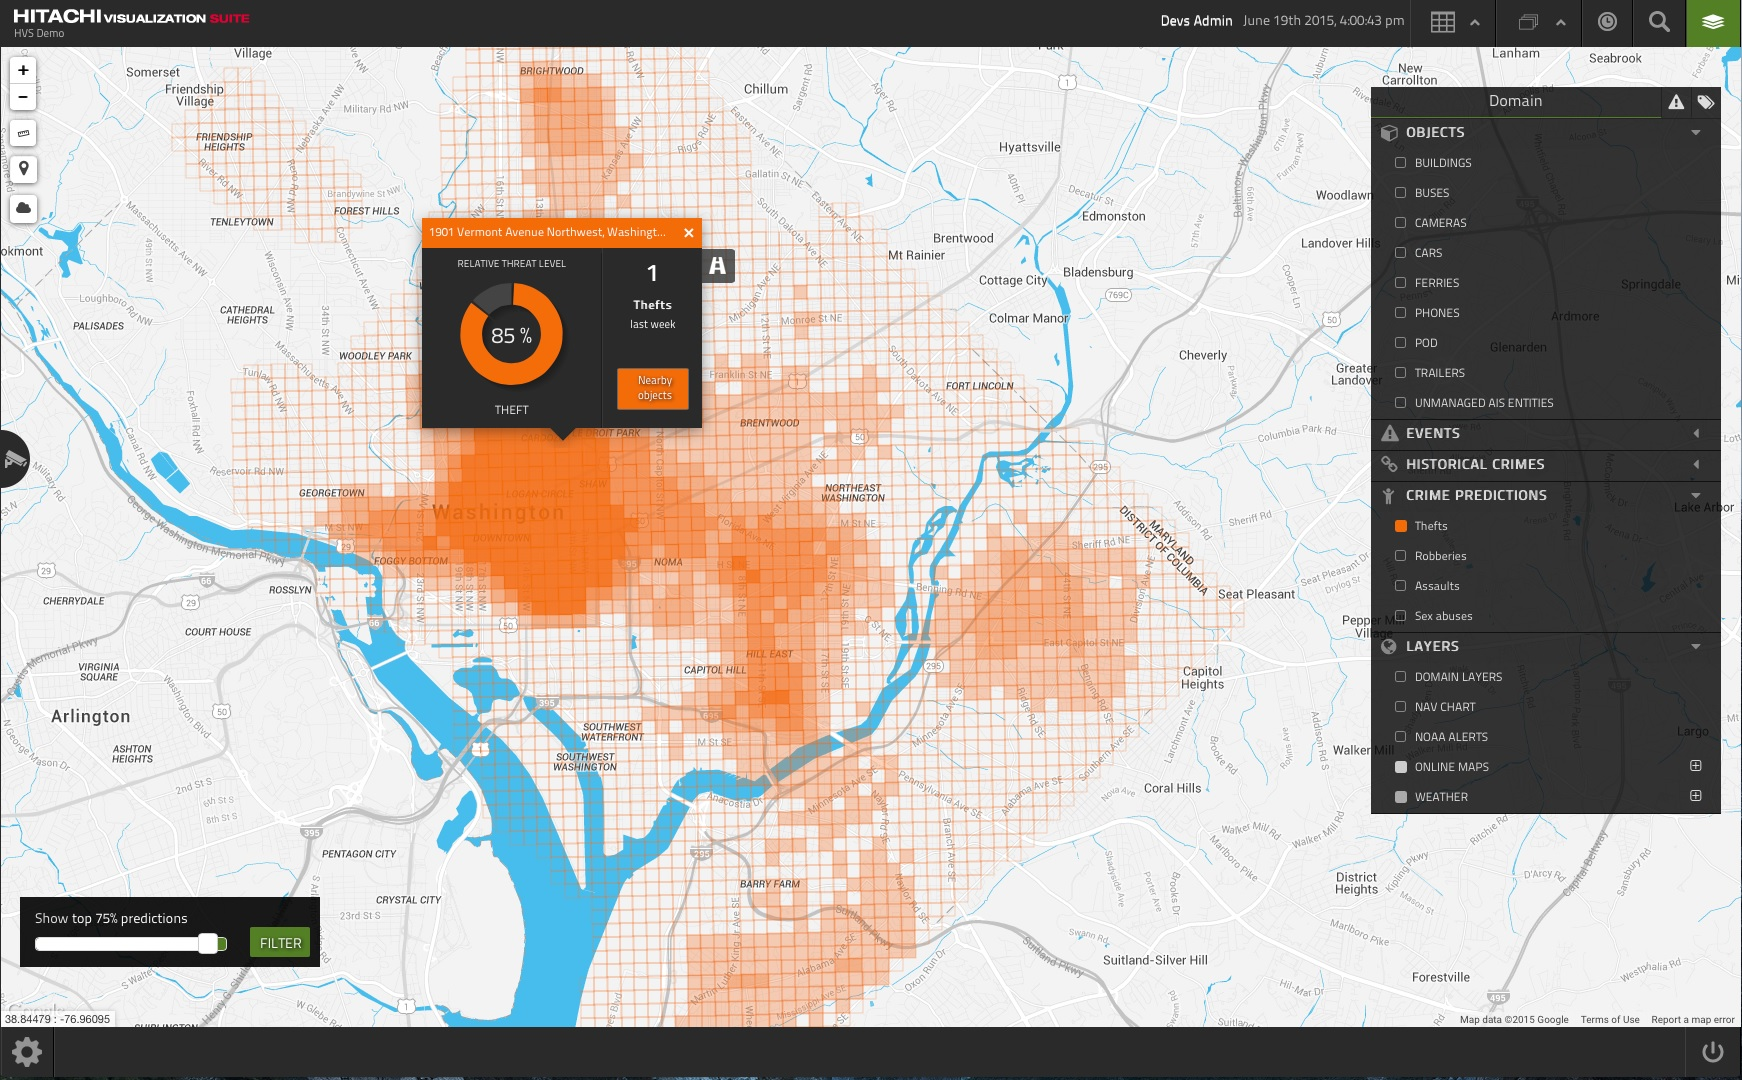 Hitachi says it can predict crimes before they happen